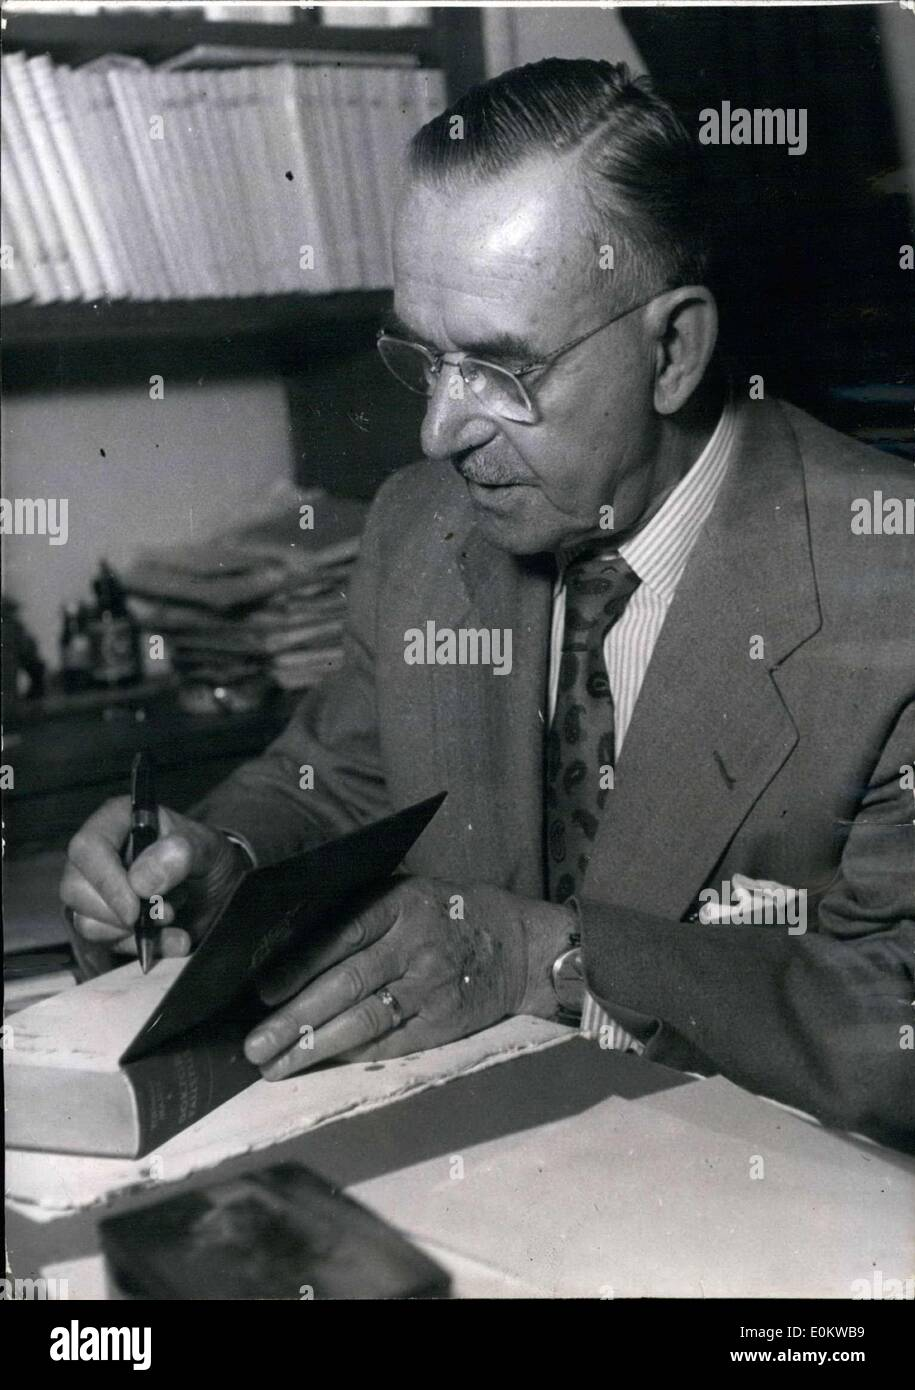 May 12, 1950 - Thomas Mann, the famous German writer, had a book signing for ''Doctor Faustus'' at the Martin Flinker Stock Photo